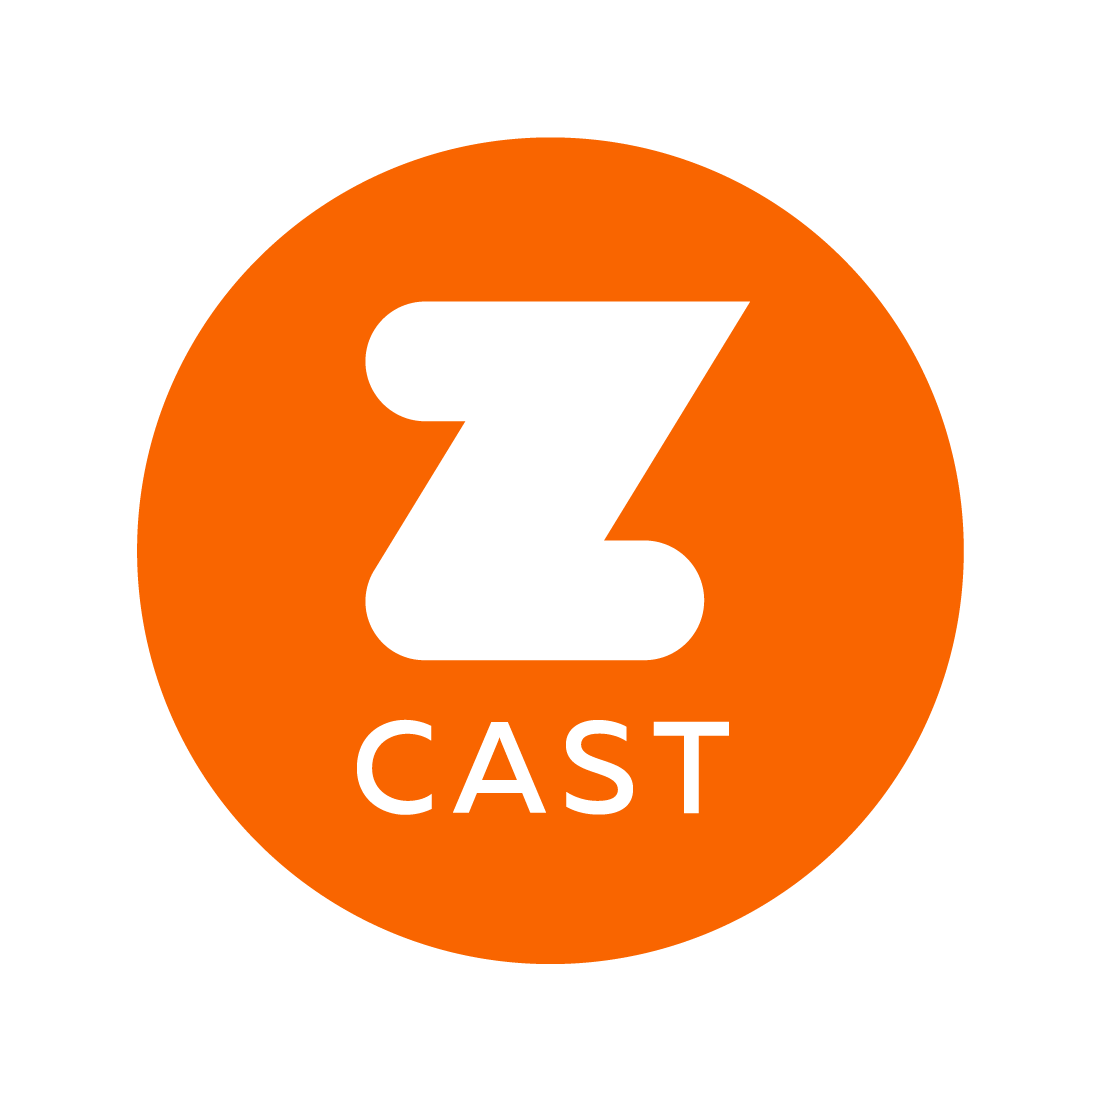 The Zwiftcast